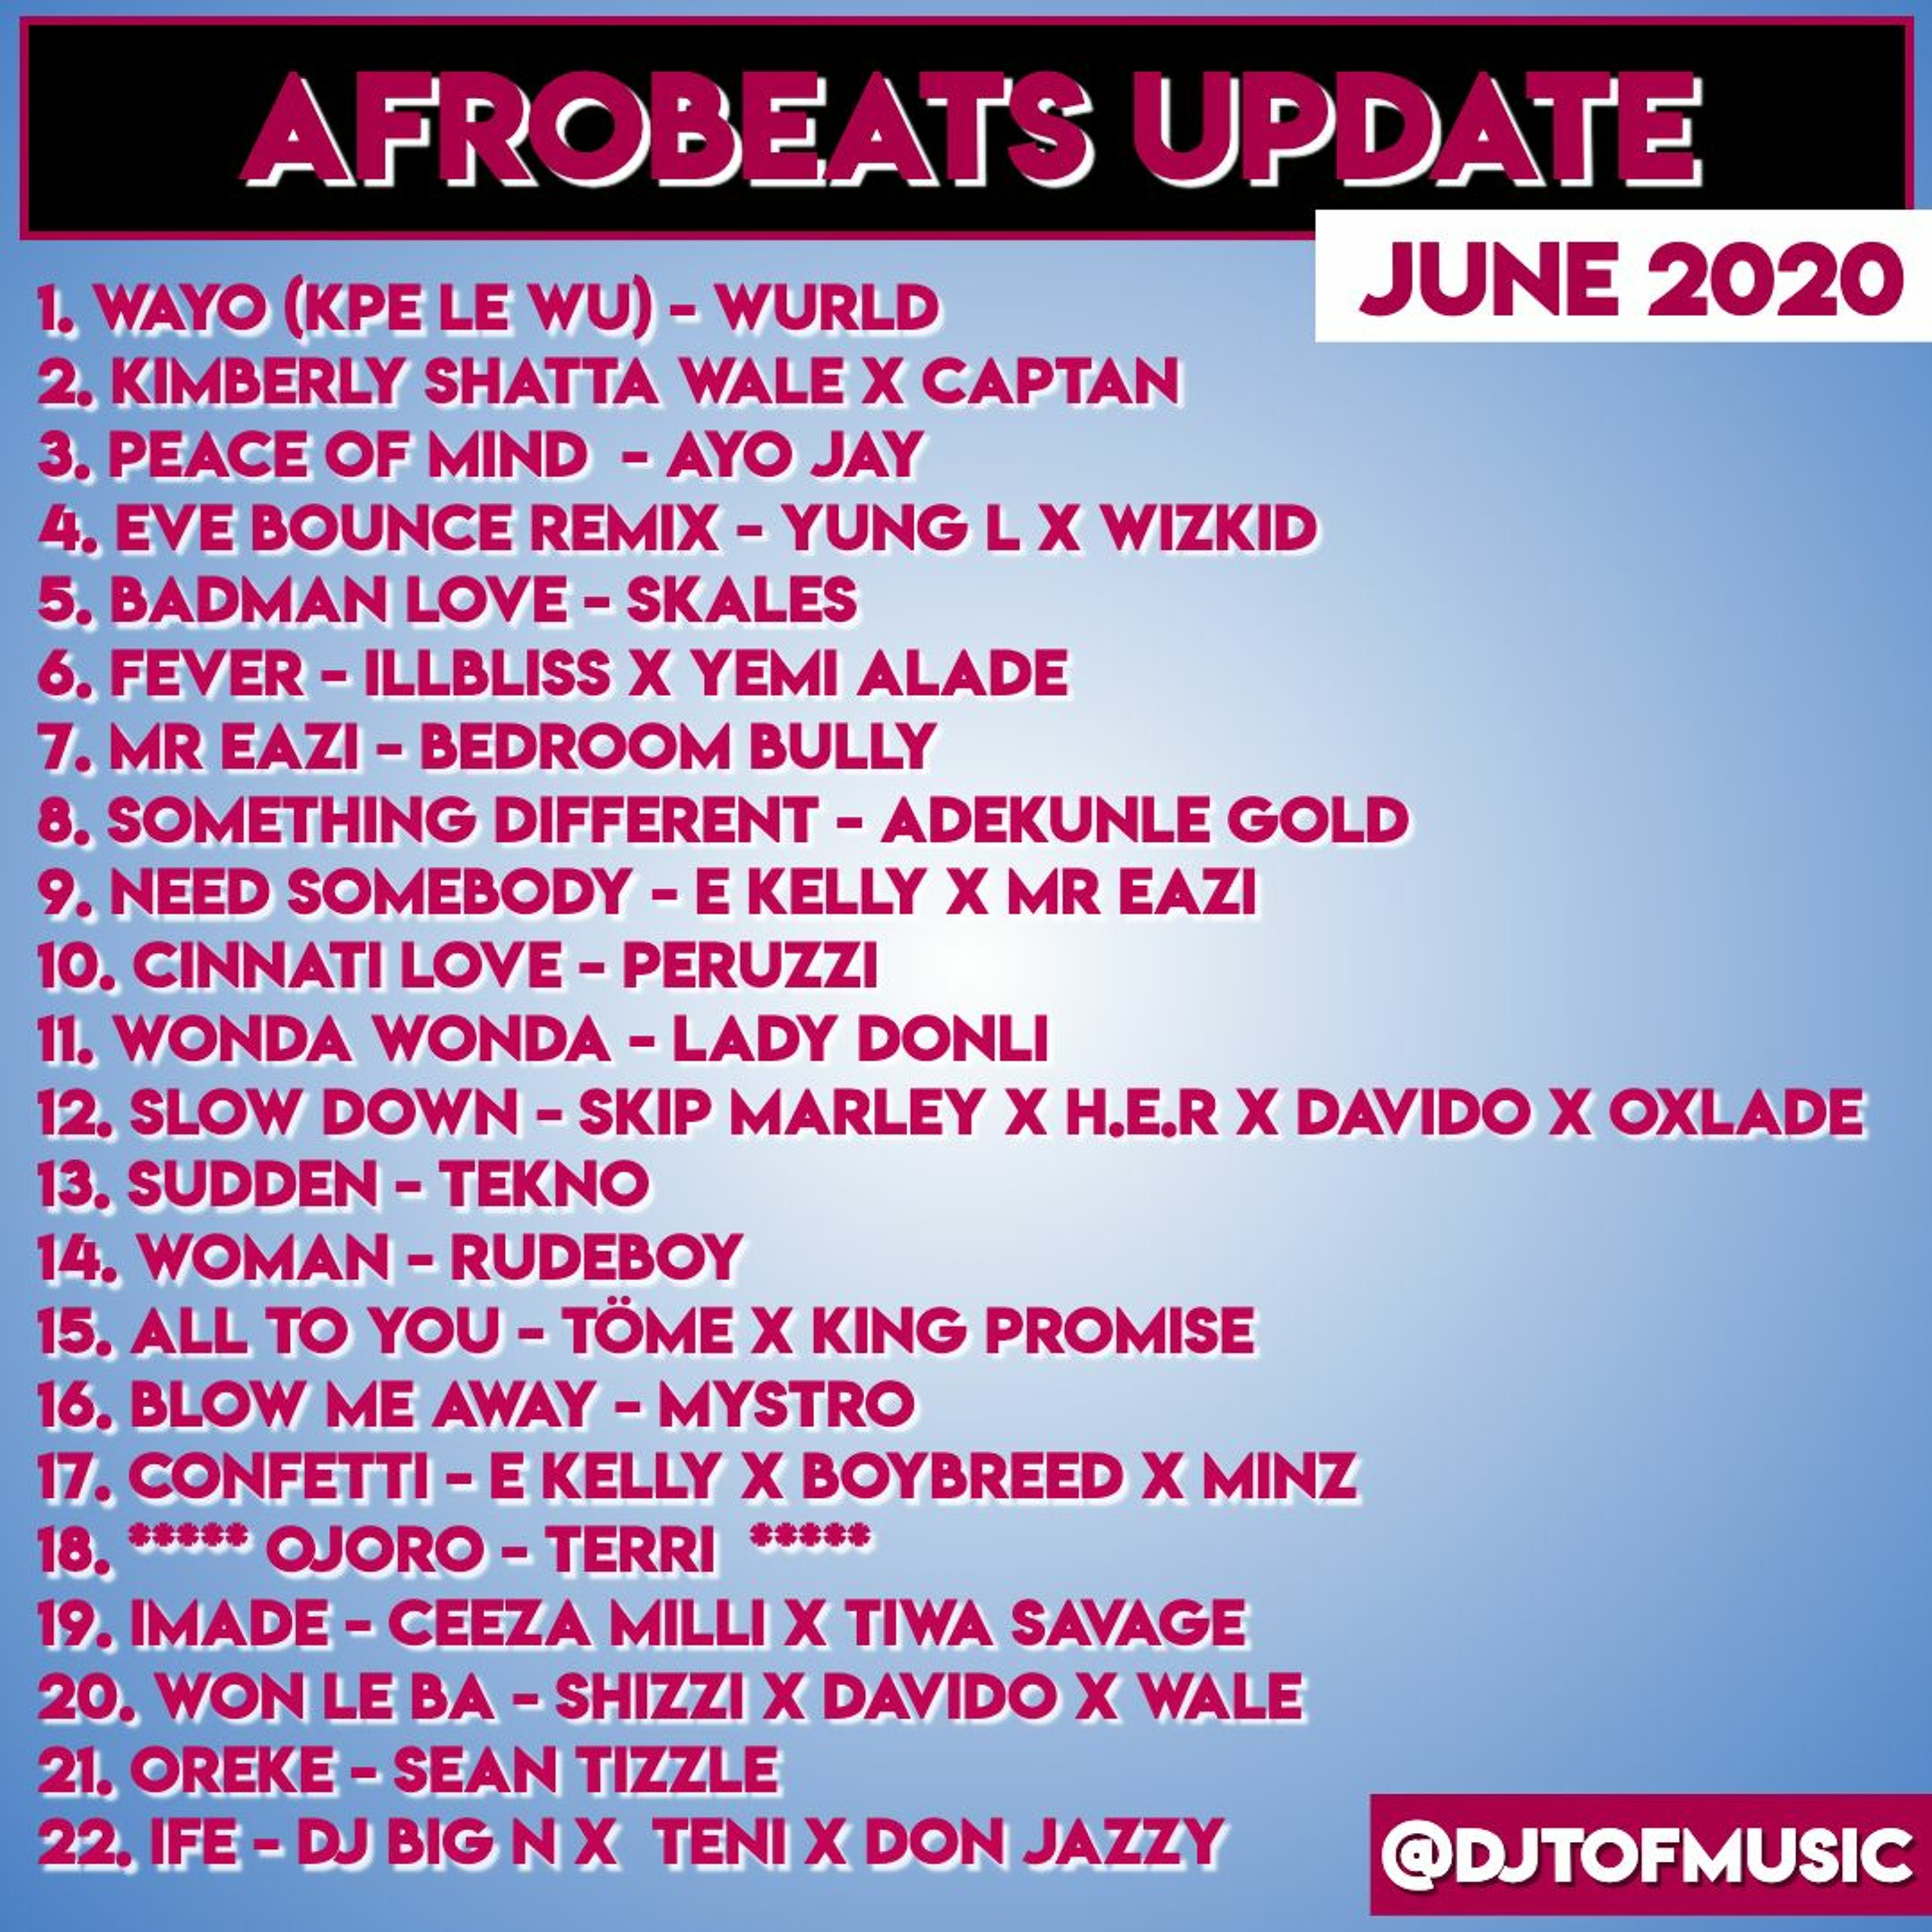 AFROBEATS UPDATE JUNE 2020